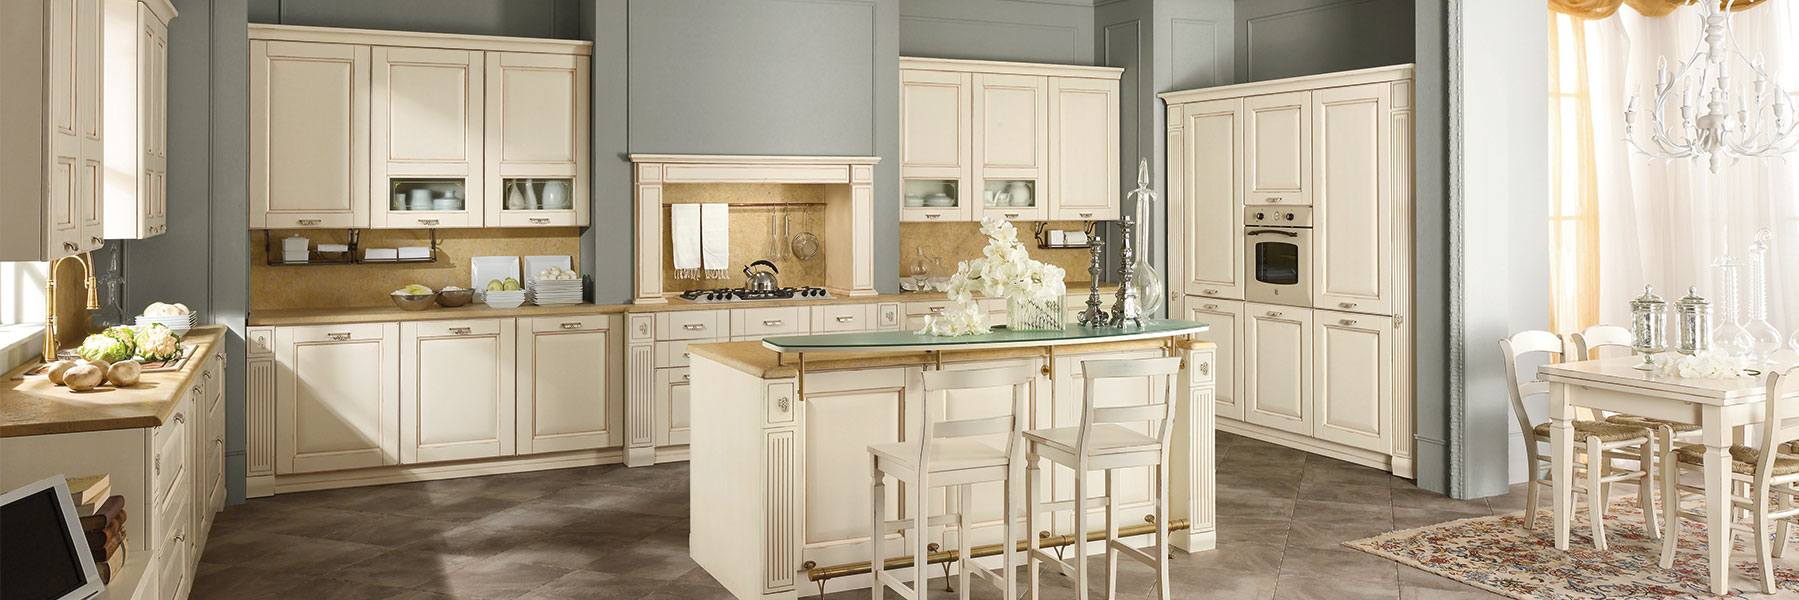 Modern Luxury Kitchen Designs and European Wardrobes Sydney – Eurolife | free Classified | Free Advertising | free classified ads